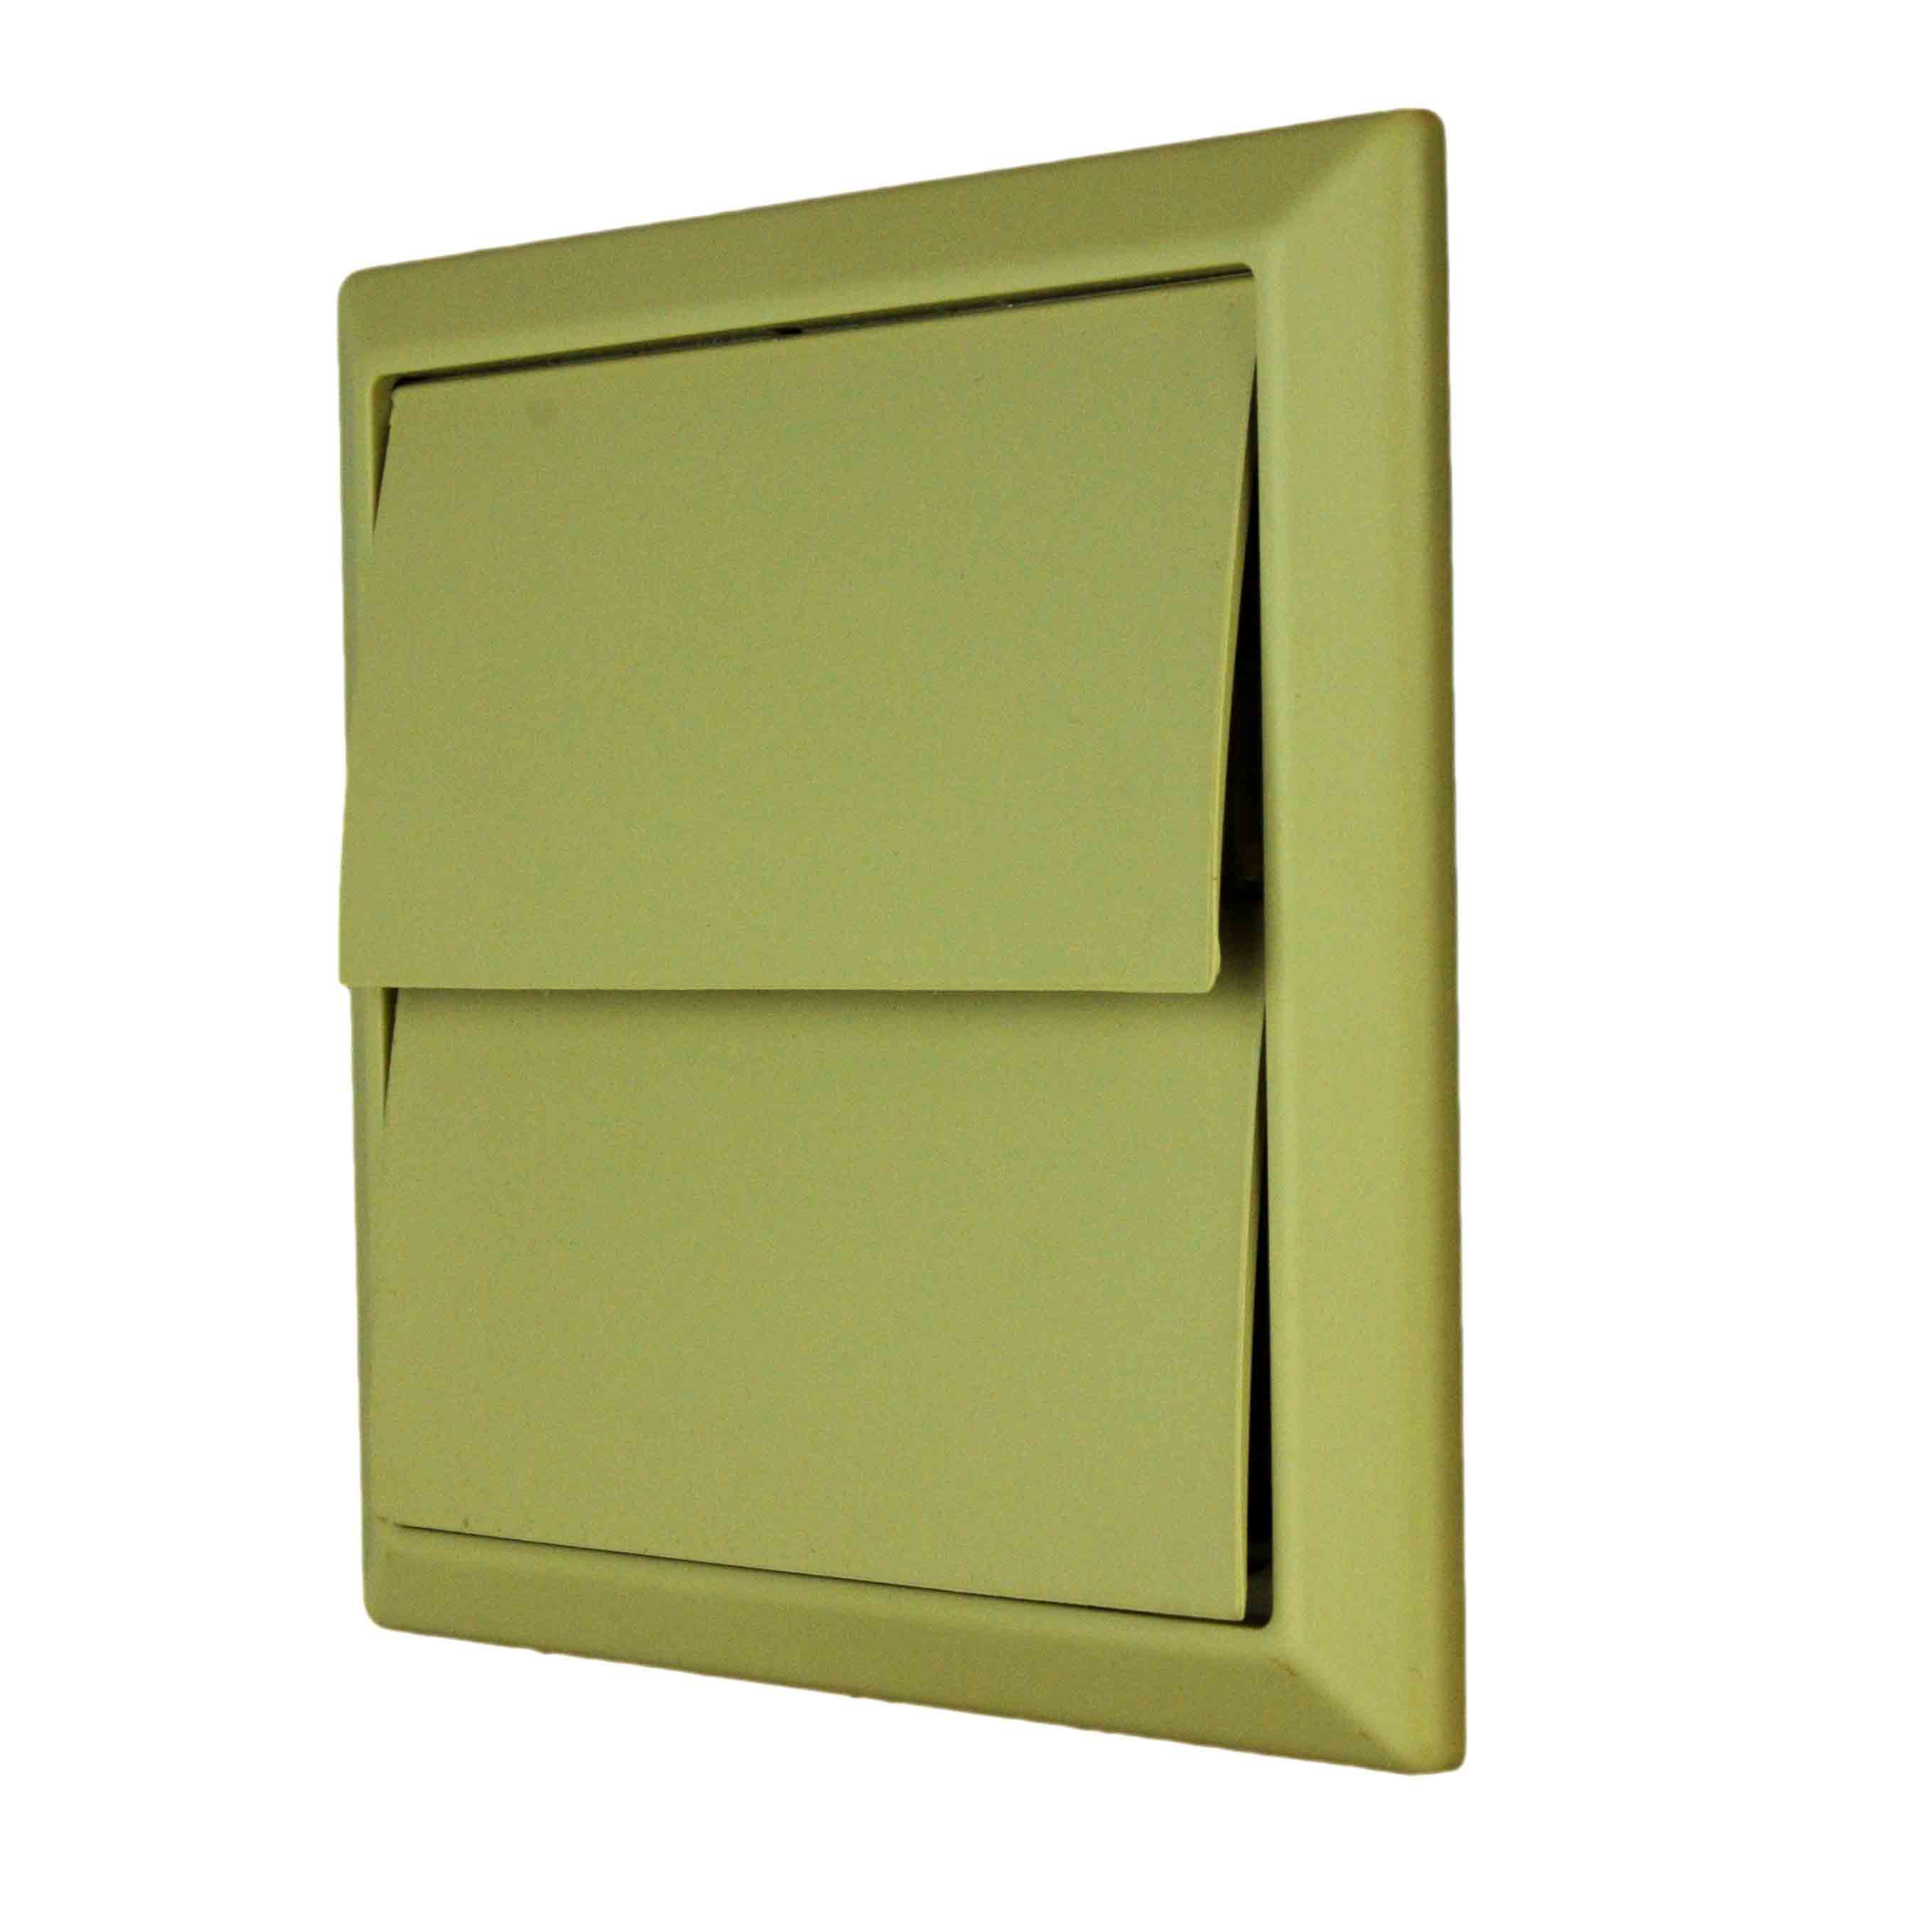 NVA 4900C 100mm Beige Gravity Wall Outlet